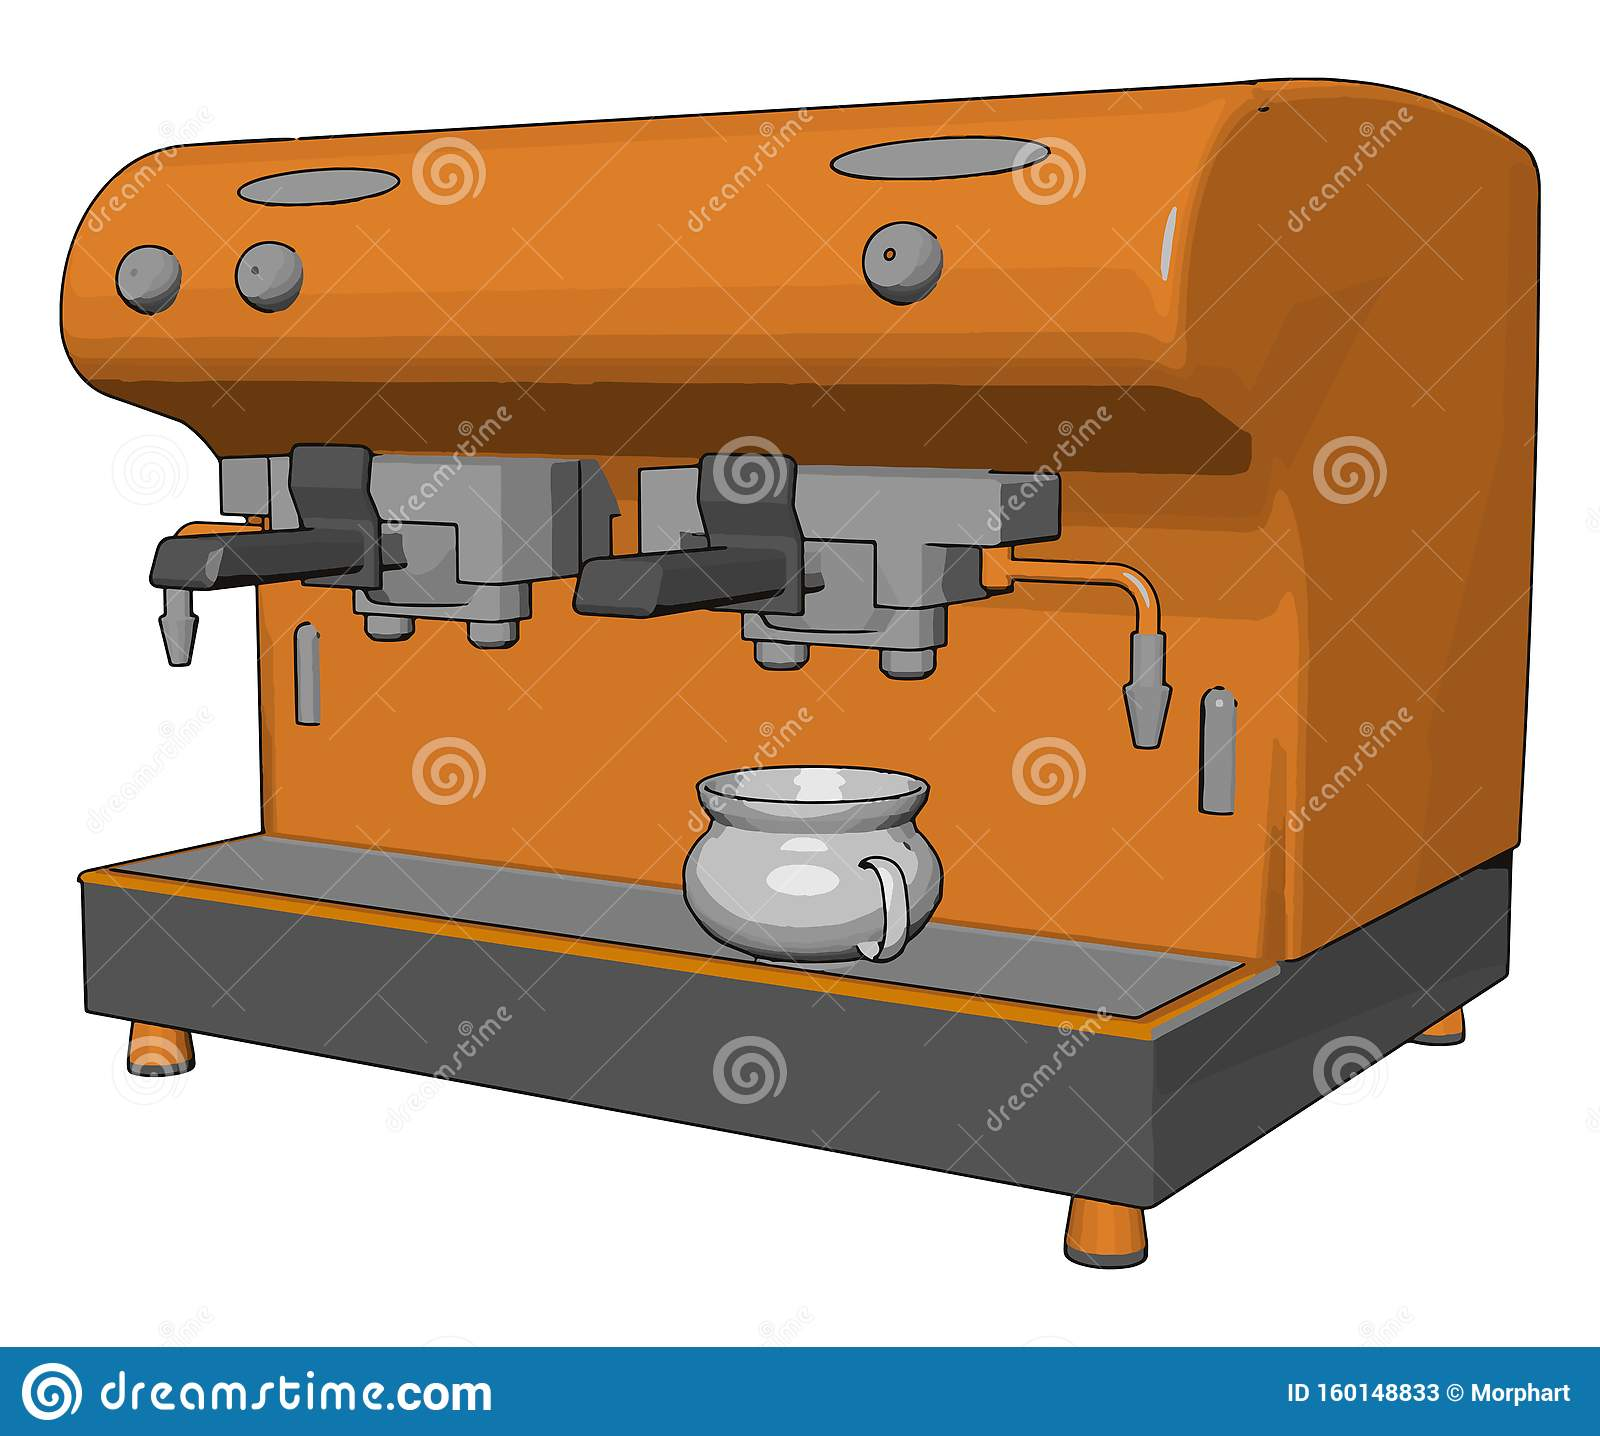 Small Coffee Vending Machine Vector Or Color Illustration Stock Vector Illustration Of Color Cafacopy 160148833